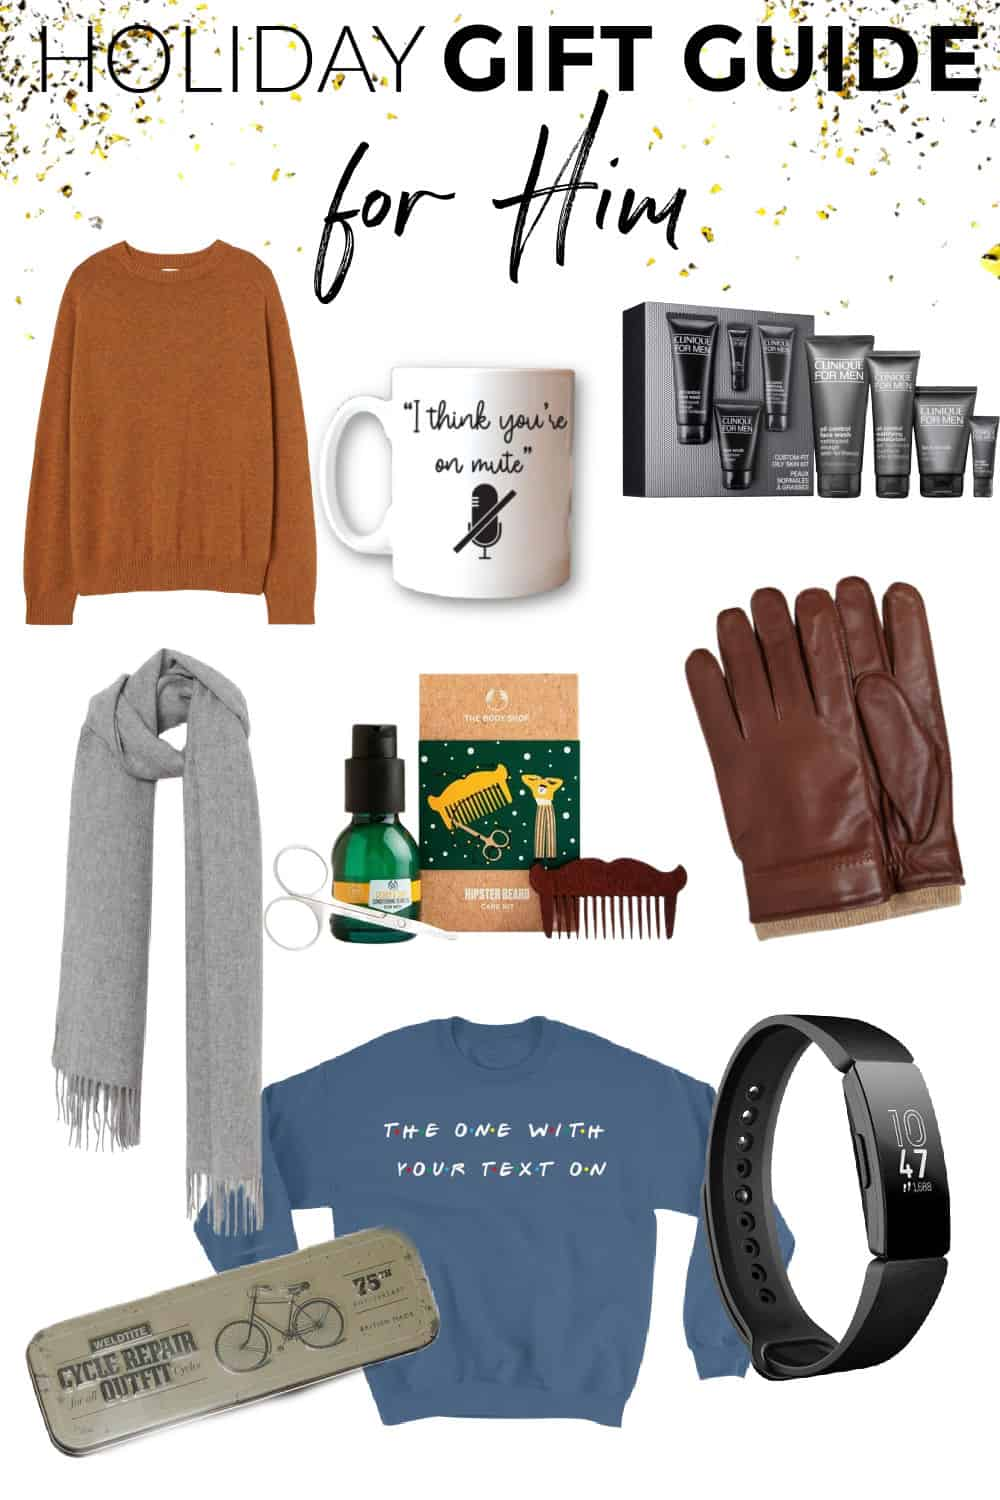 Holiday gift guide for him Christmas 2020